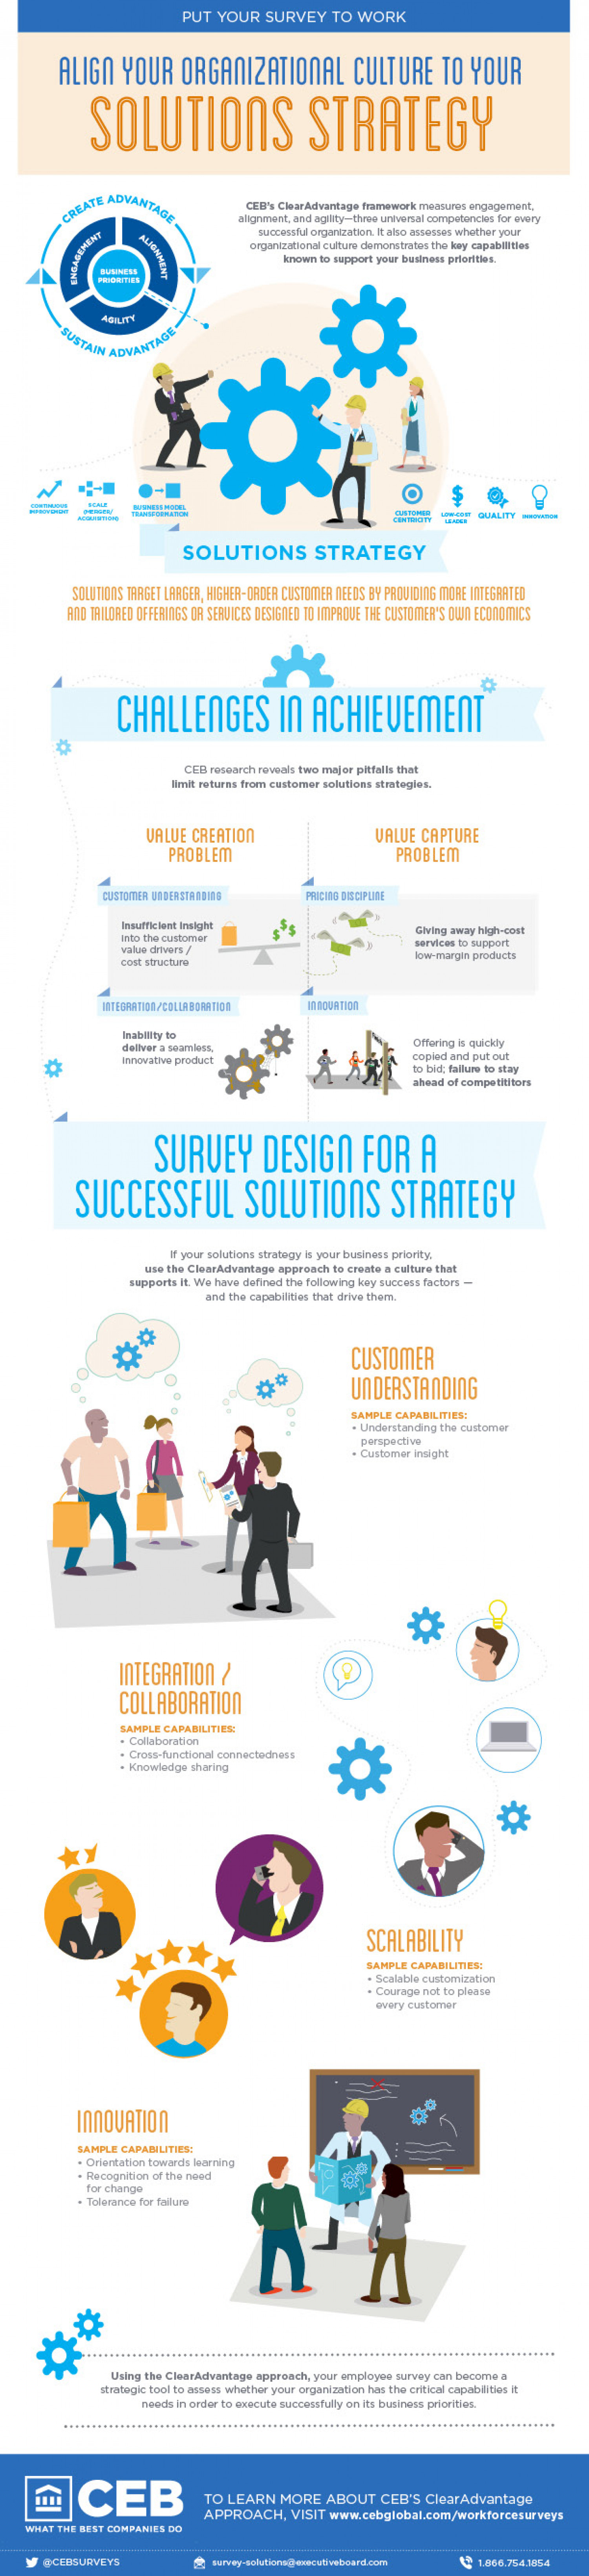 Align Your Organizational Culture to Your Solutions Strategy Infographic